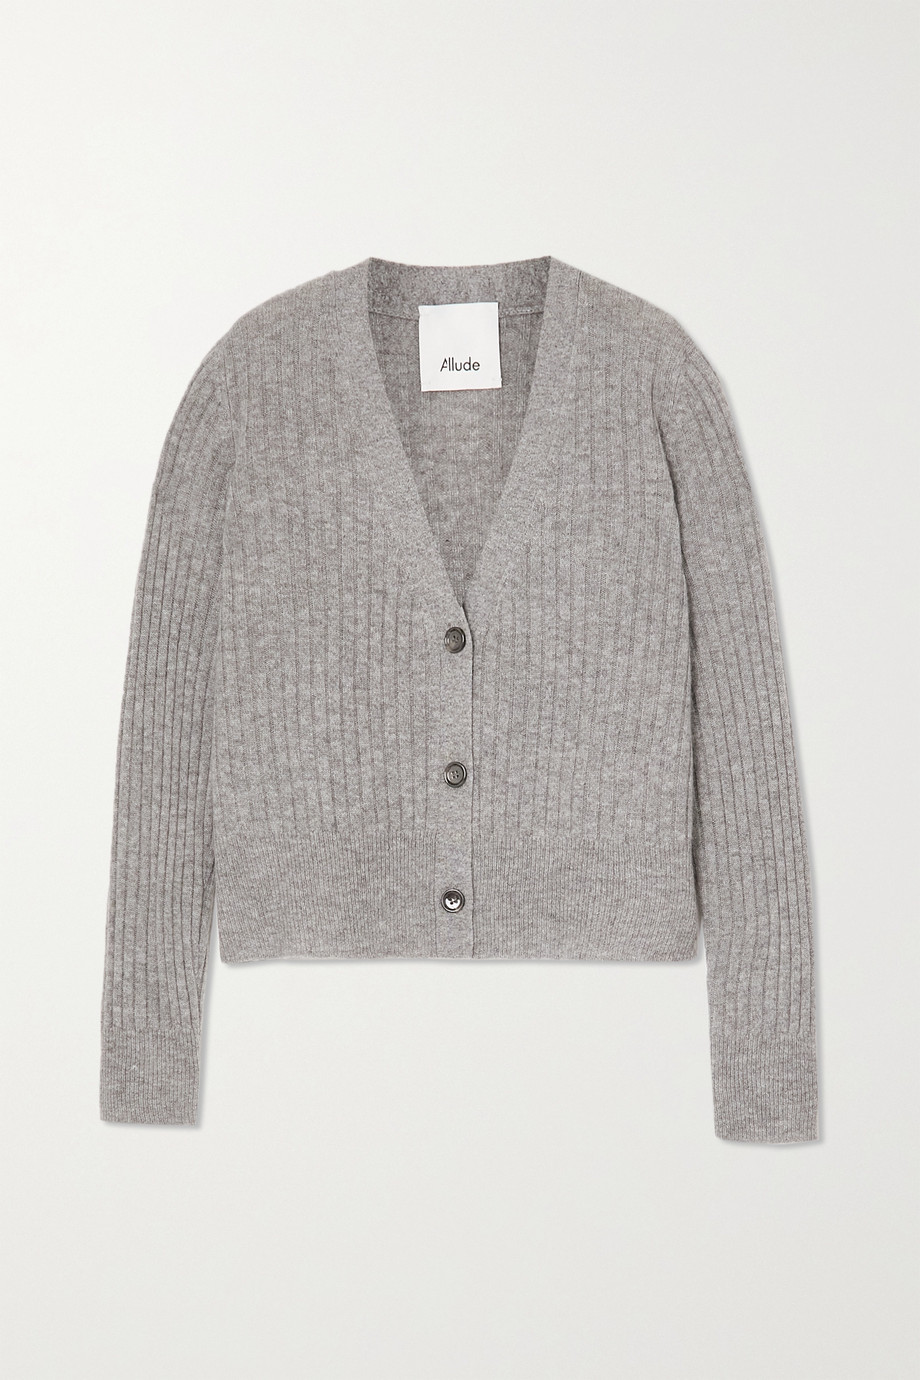 Allude Cropped ribbed cashmere cardigan